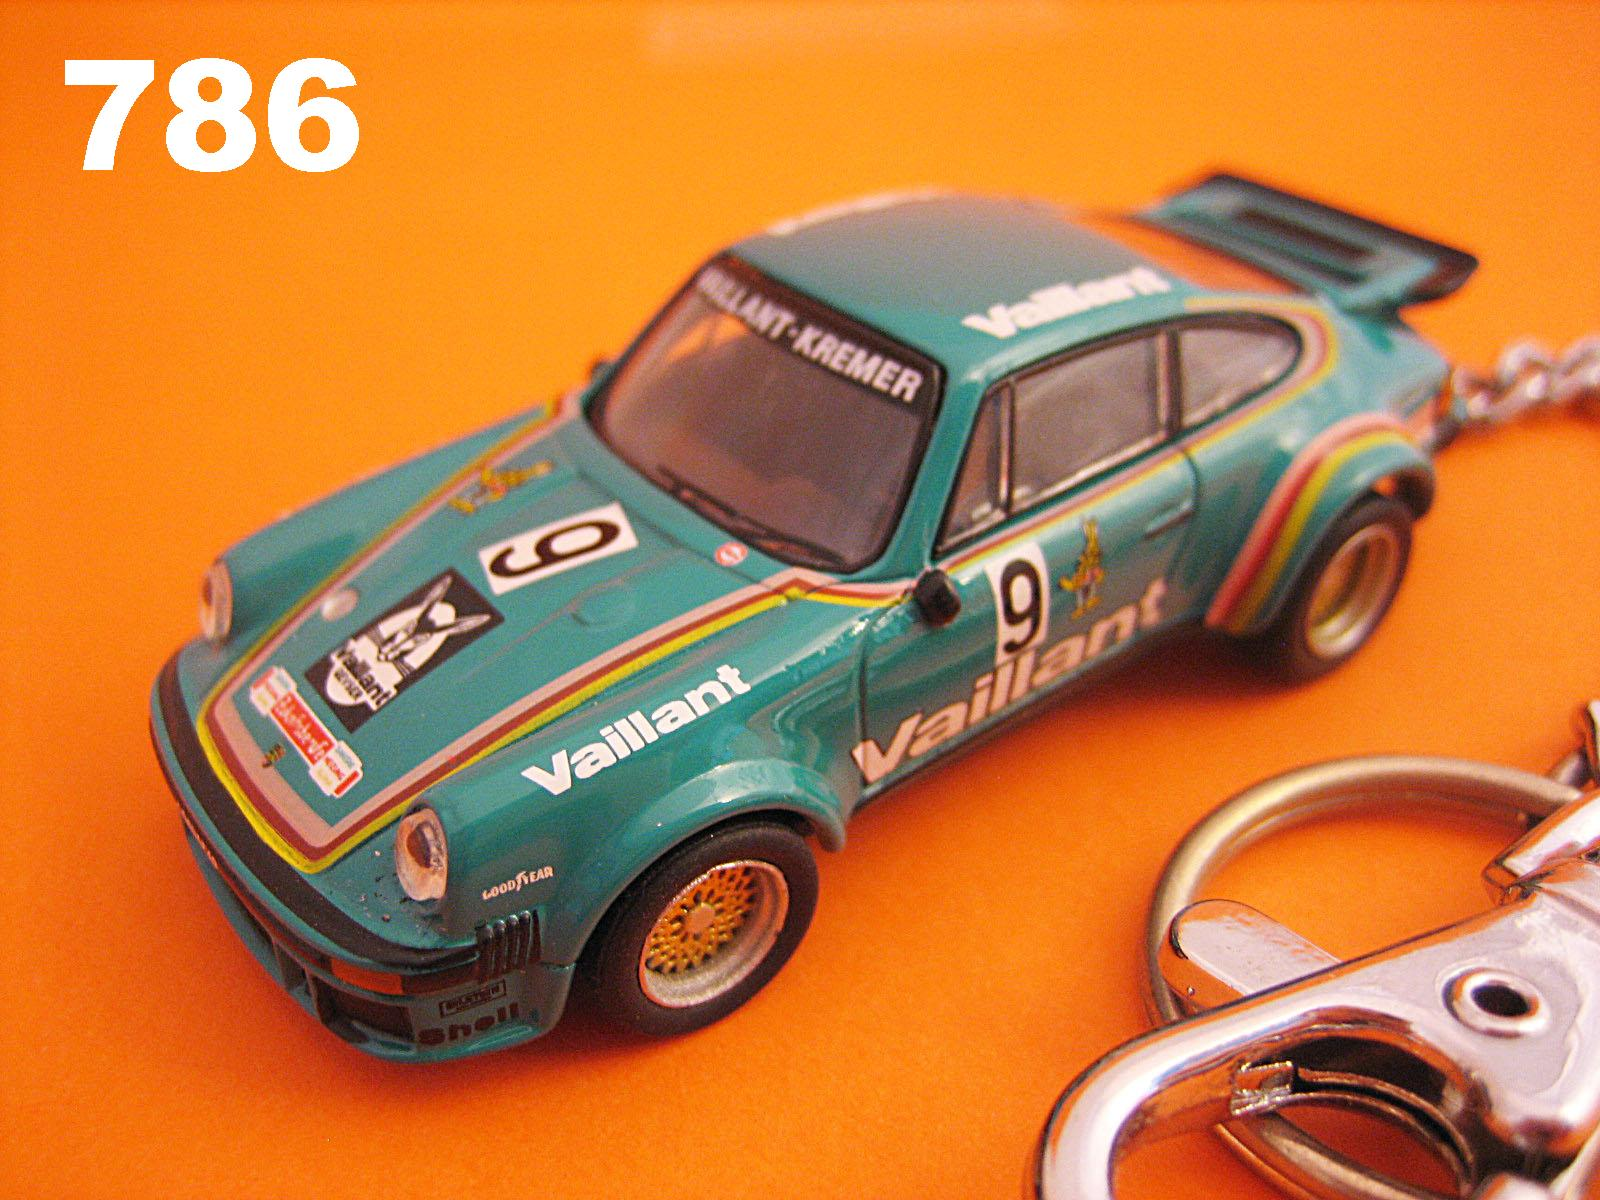 Porsche 934 Turbo RSR Vaillant #9 (Green) Die-cast Key Chain